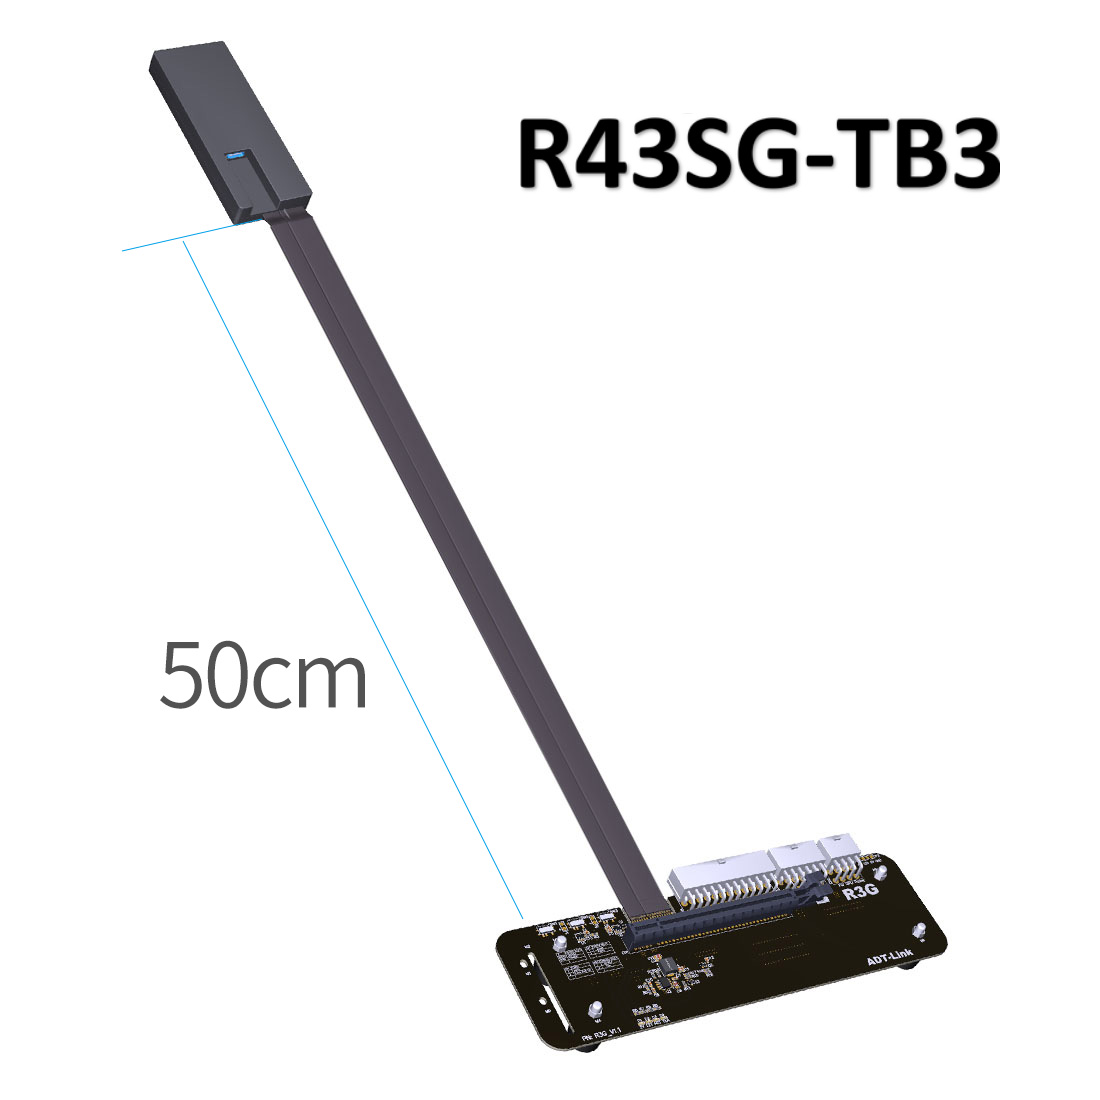 R43SG-TB3 PCIe X16 PCI-e X16 To TB3 Extension Cable PCI-Express Cables EGPU Adapter External Graphics Card Stand Bracket For PC